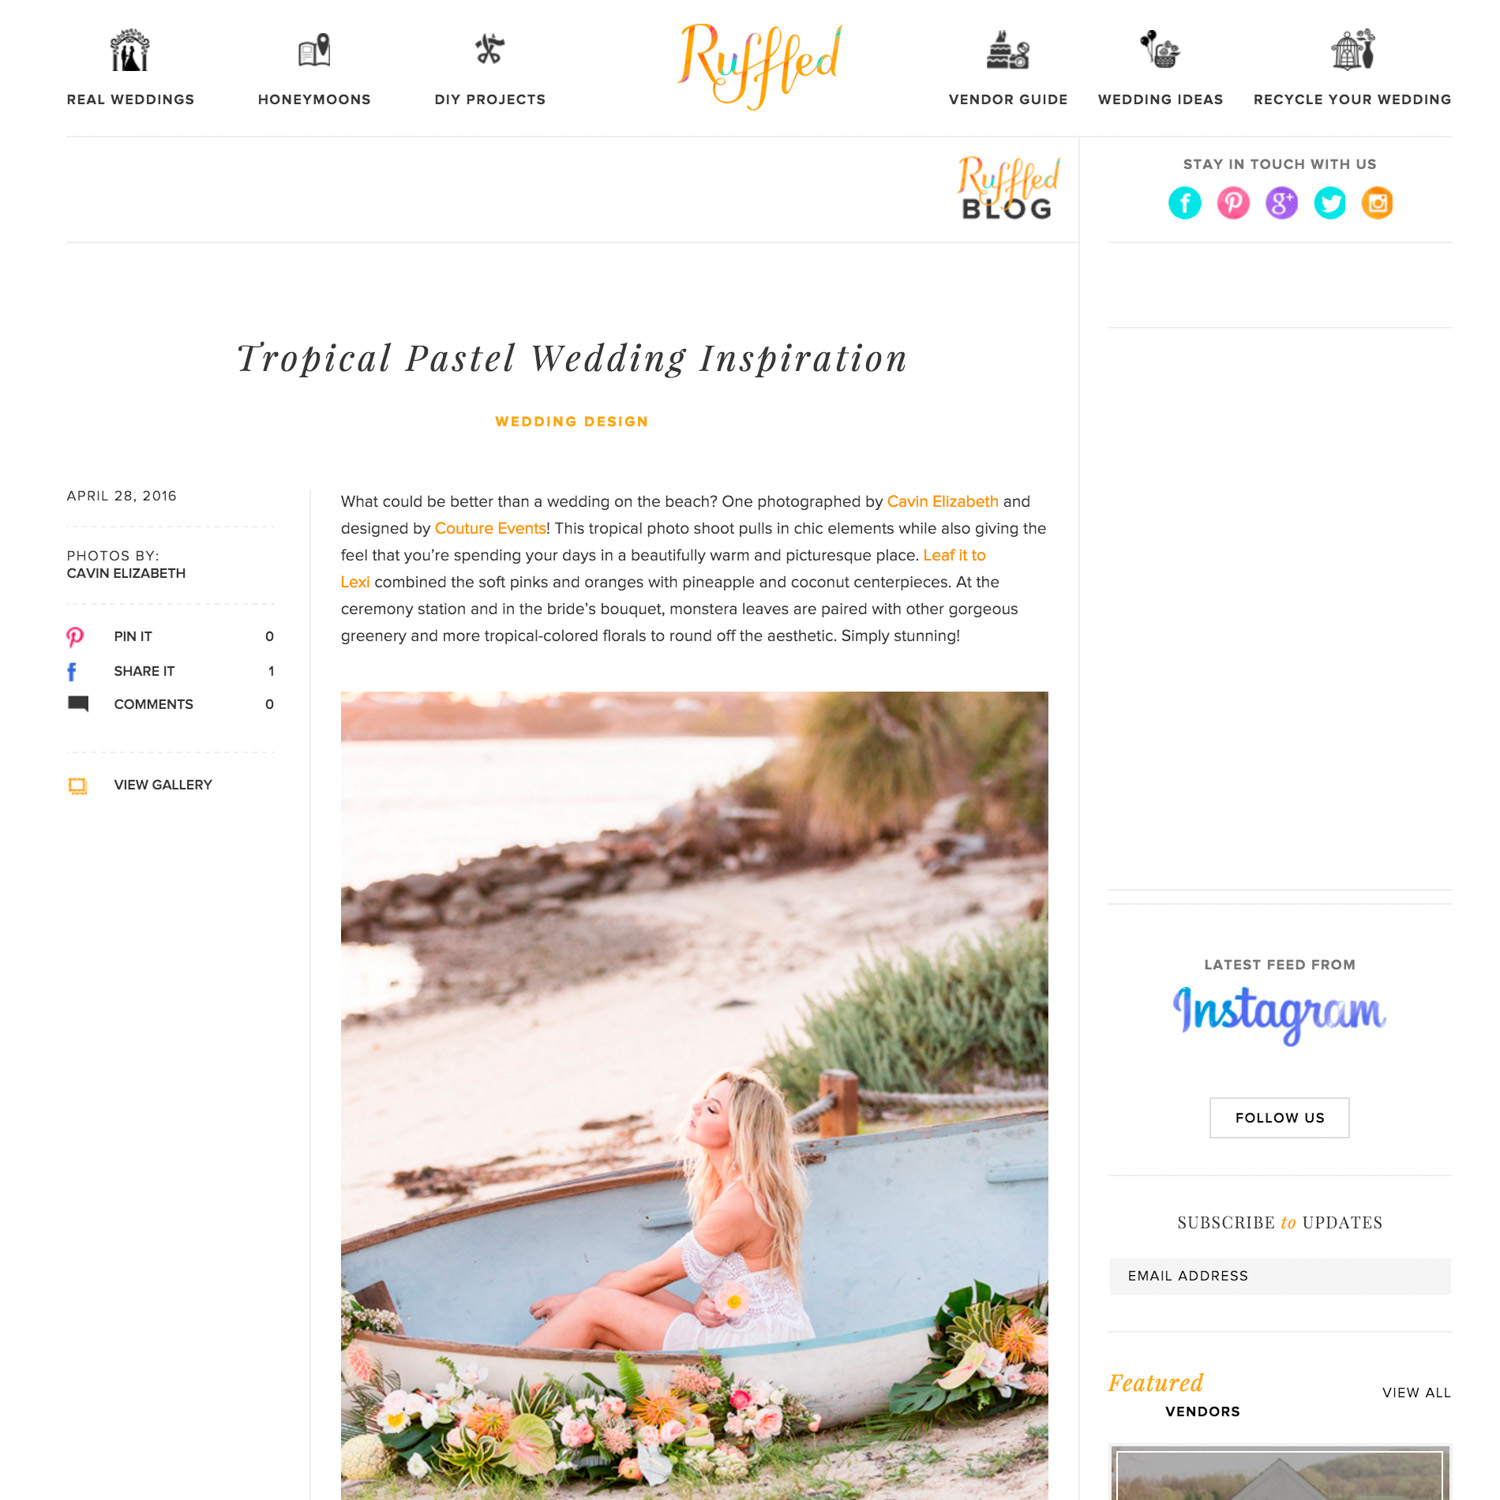 San Diego wedding photographer featured on Ruffled press blog